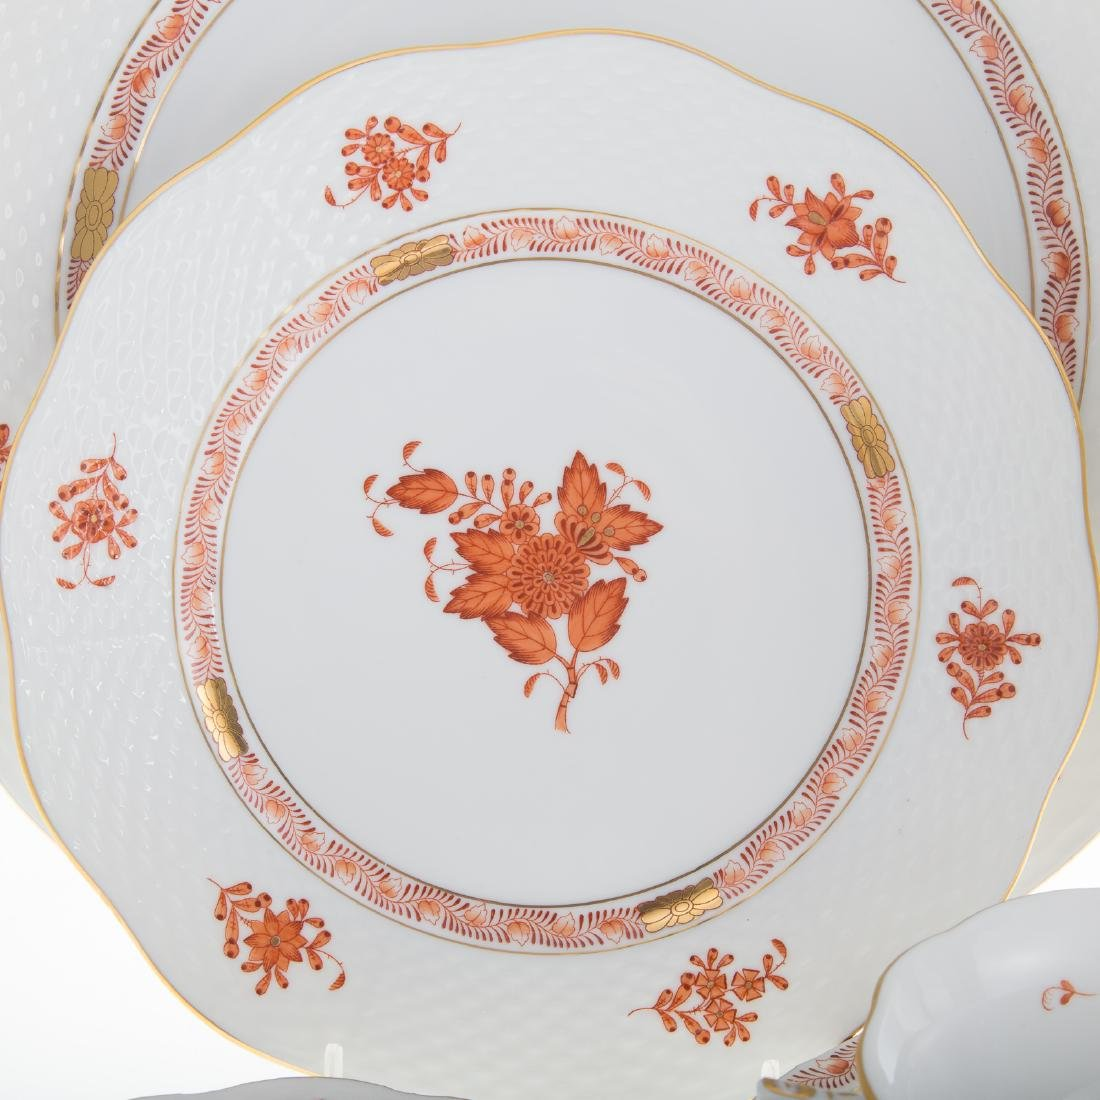 Herend china partial dinner service - 2